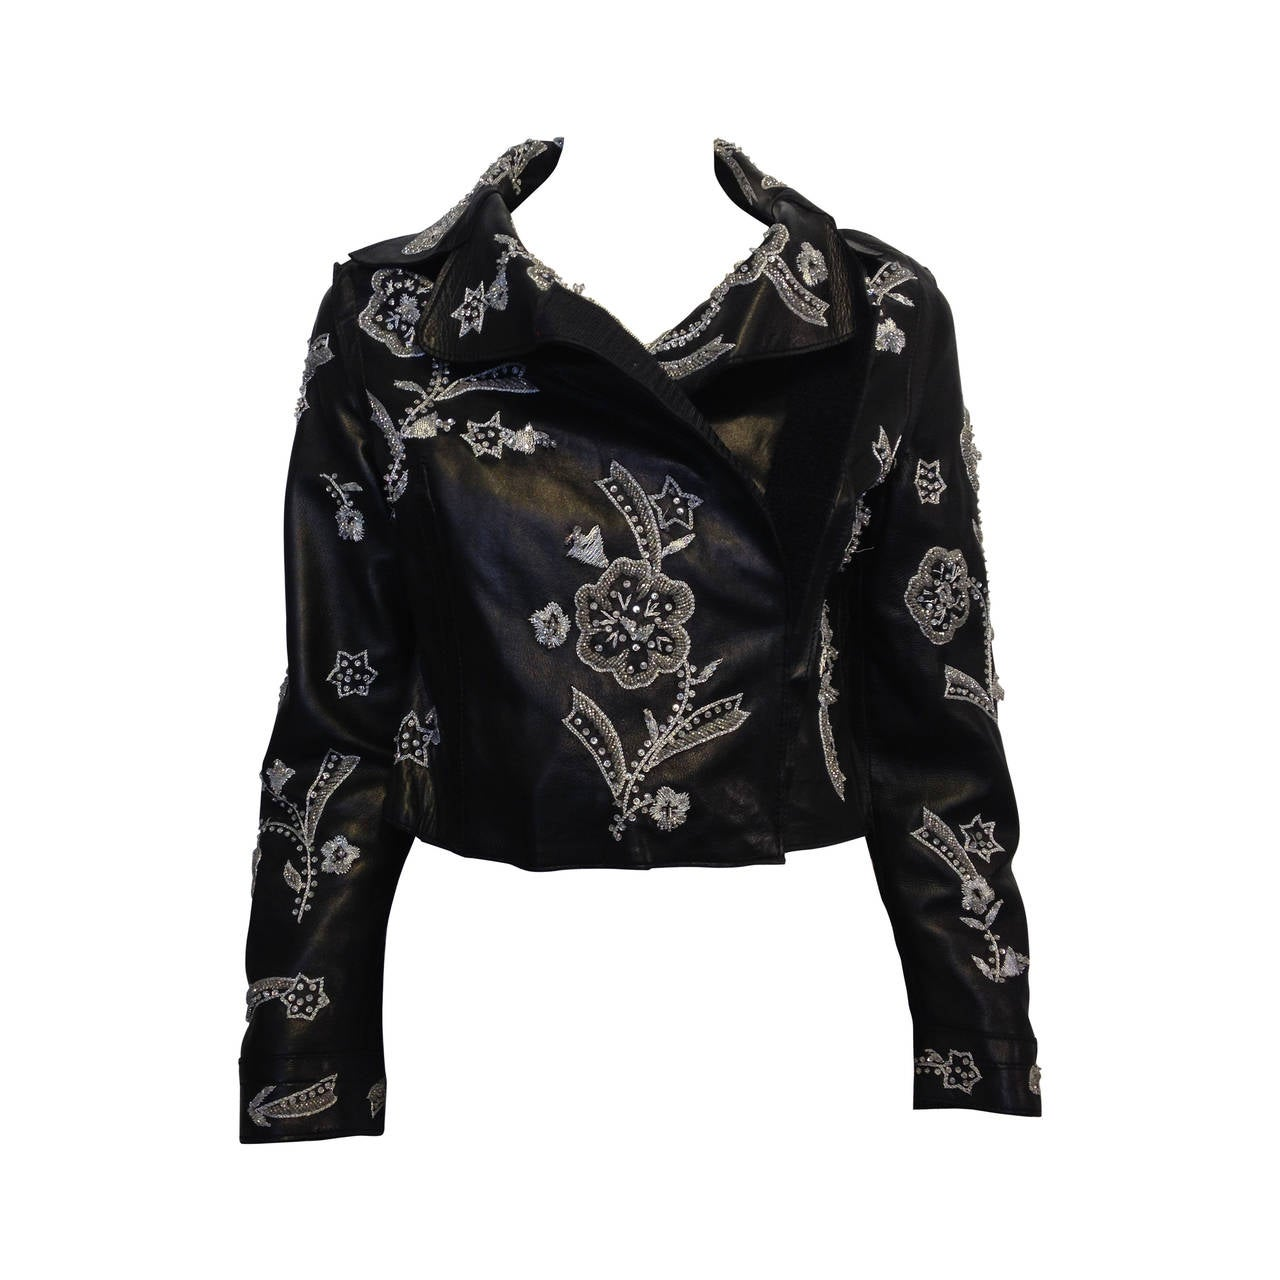 Dolce & Gabbana Black Leather Jacket with Silver Beading 1